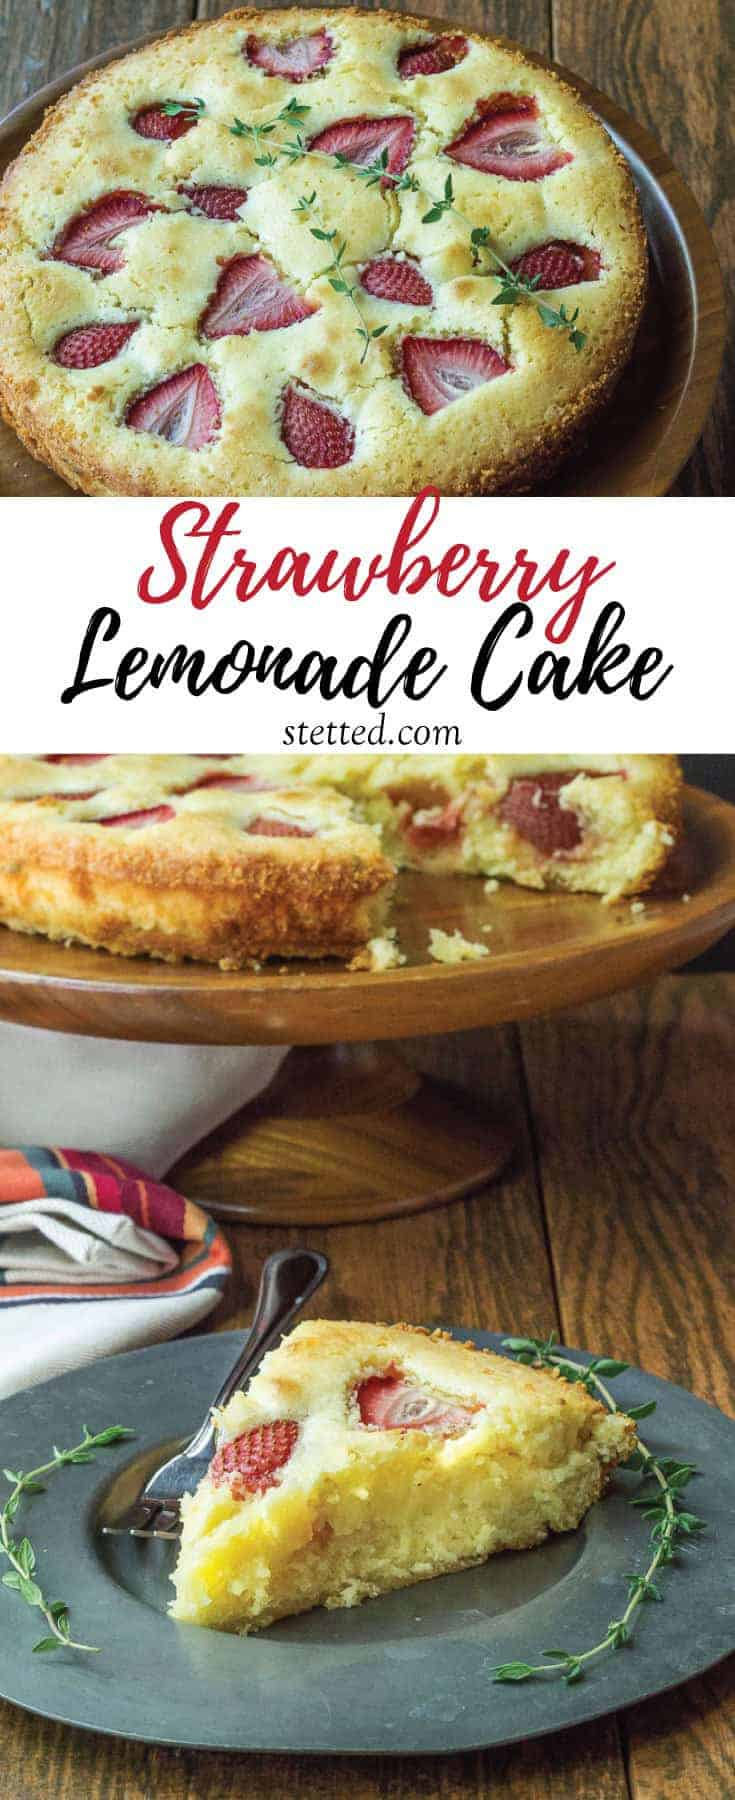 Strawberry lemonade cake needs no frosting to make it shine. The sweet-tart flavor is perfect for spring gatherings.